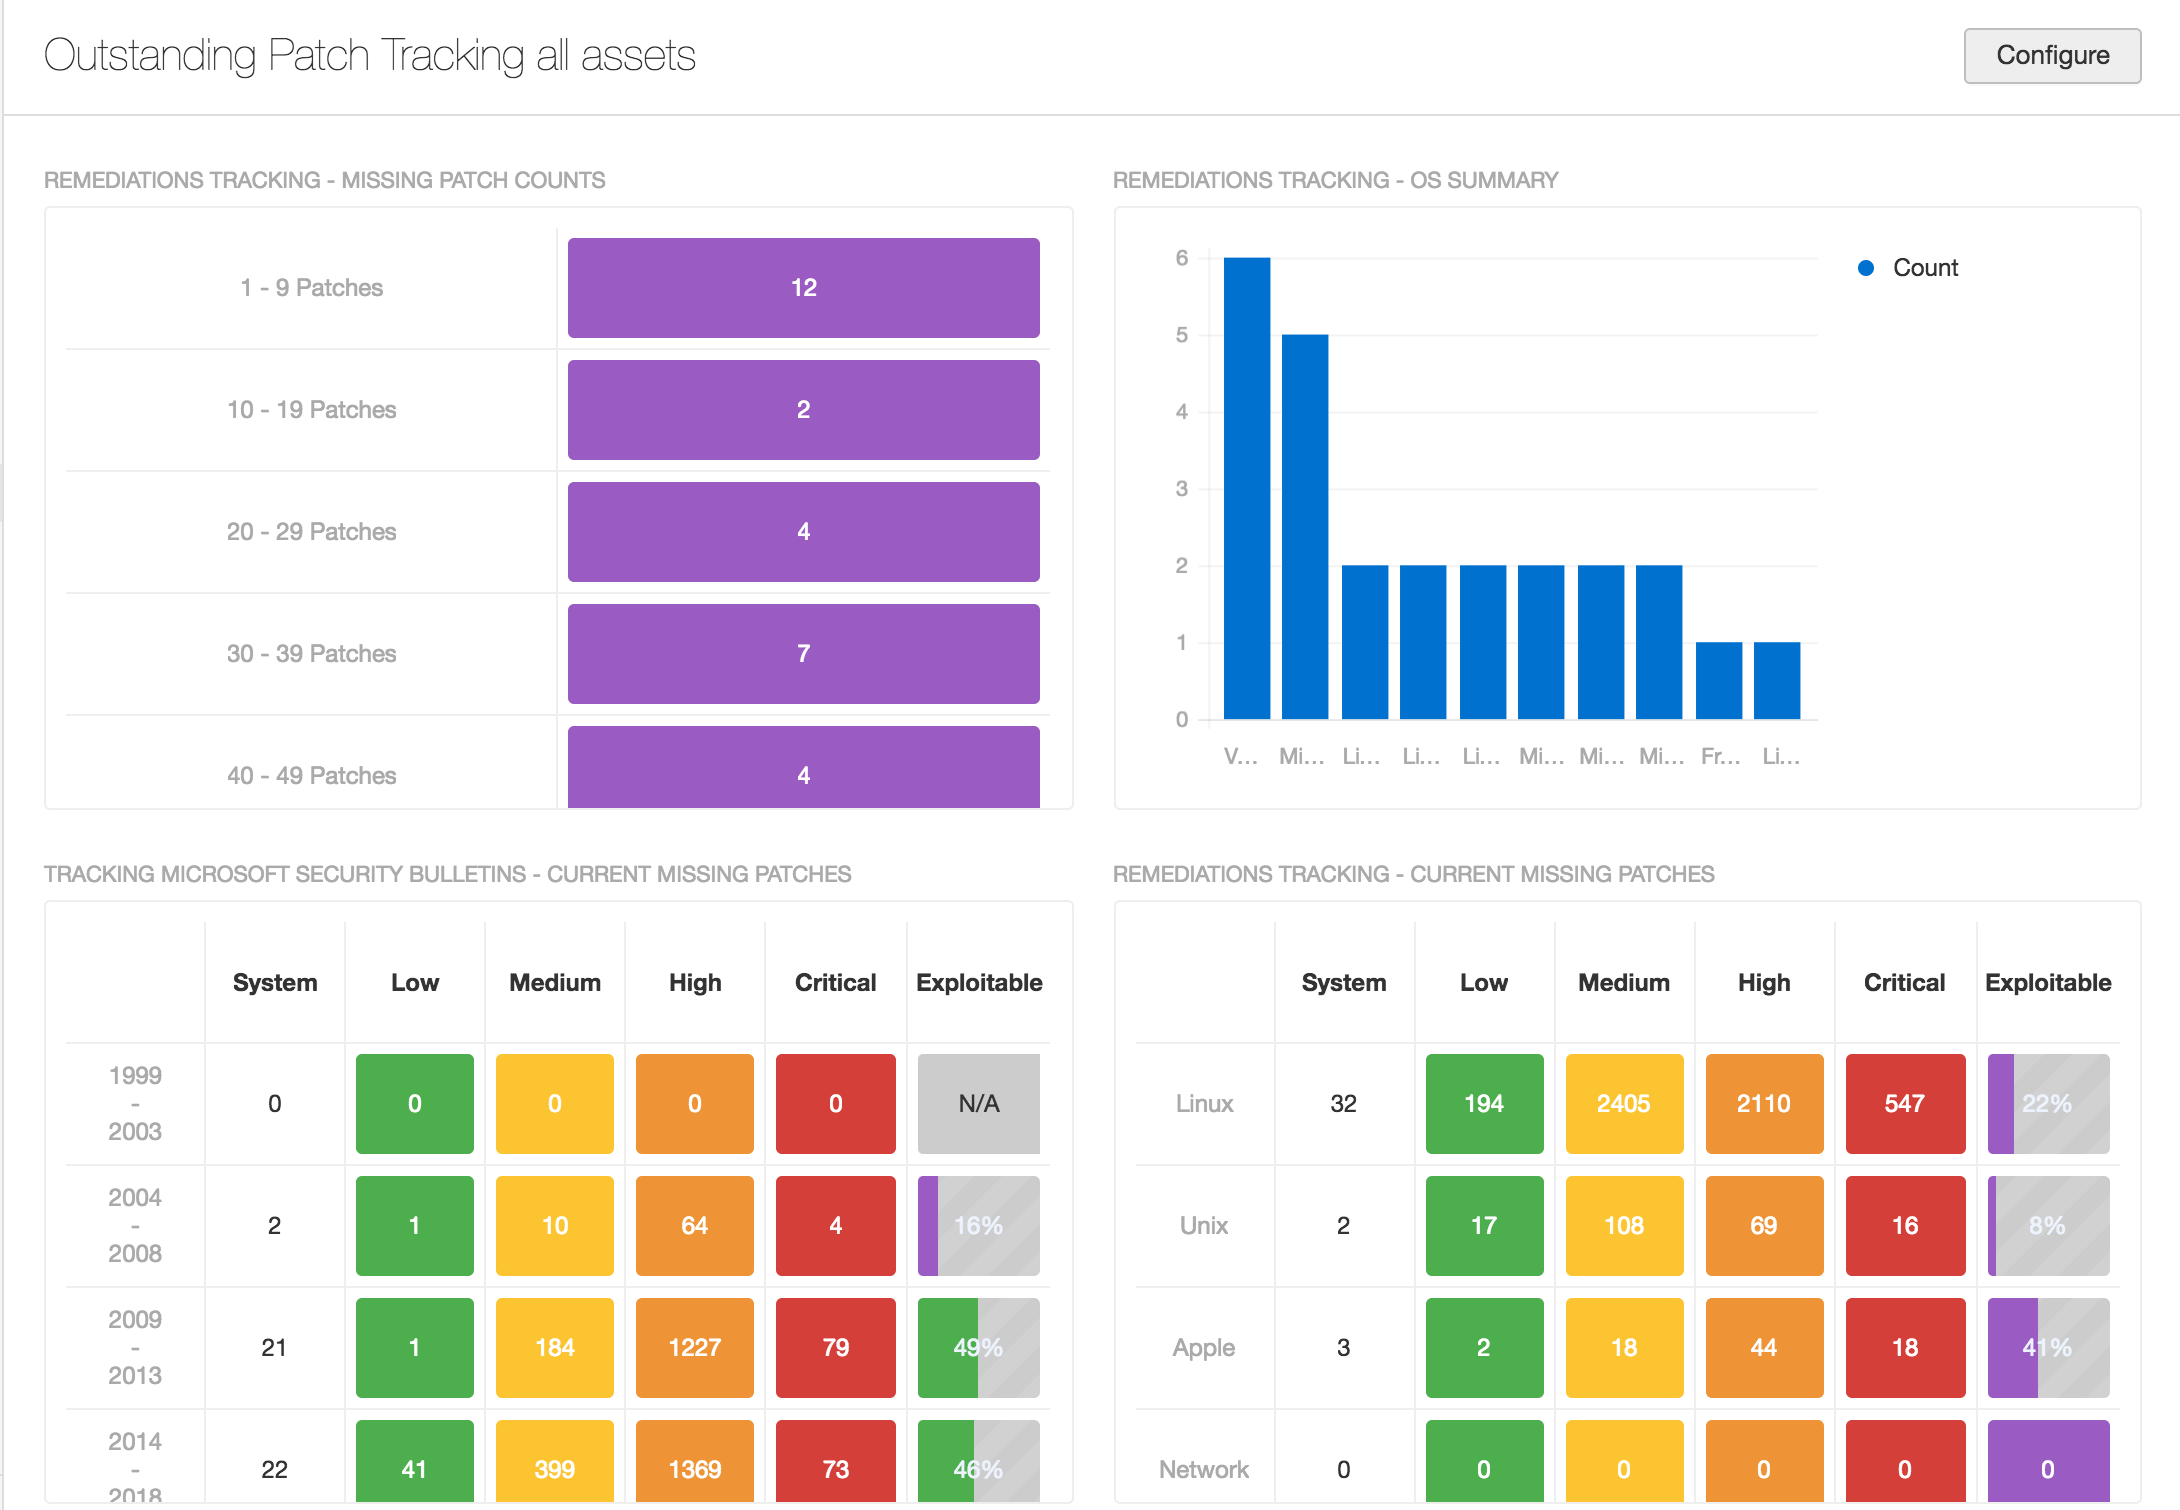 Tenable.io VM Outstanding Patch Tracking All Assets Dashboard